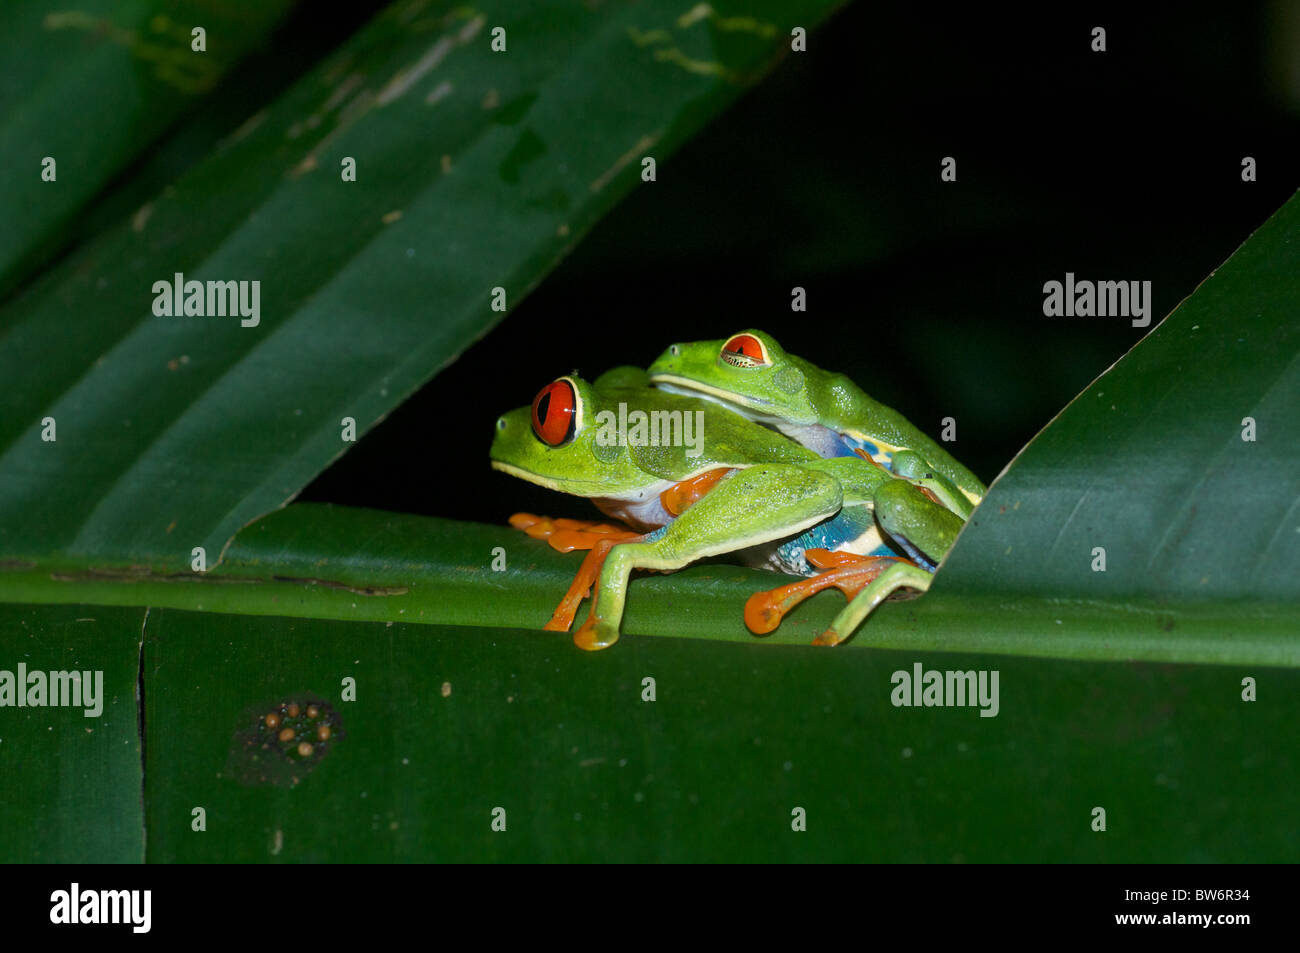 A pair of mating Red-eyed Treefrogs (Agalychnis callidryas) in Alajuela, Costa RIca. - Stock Image